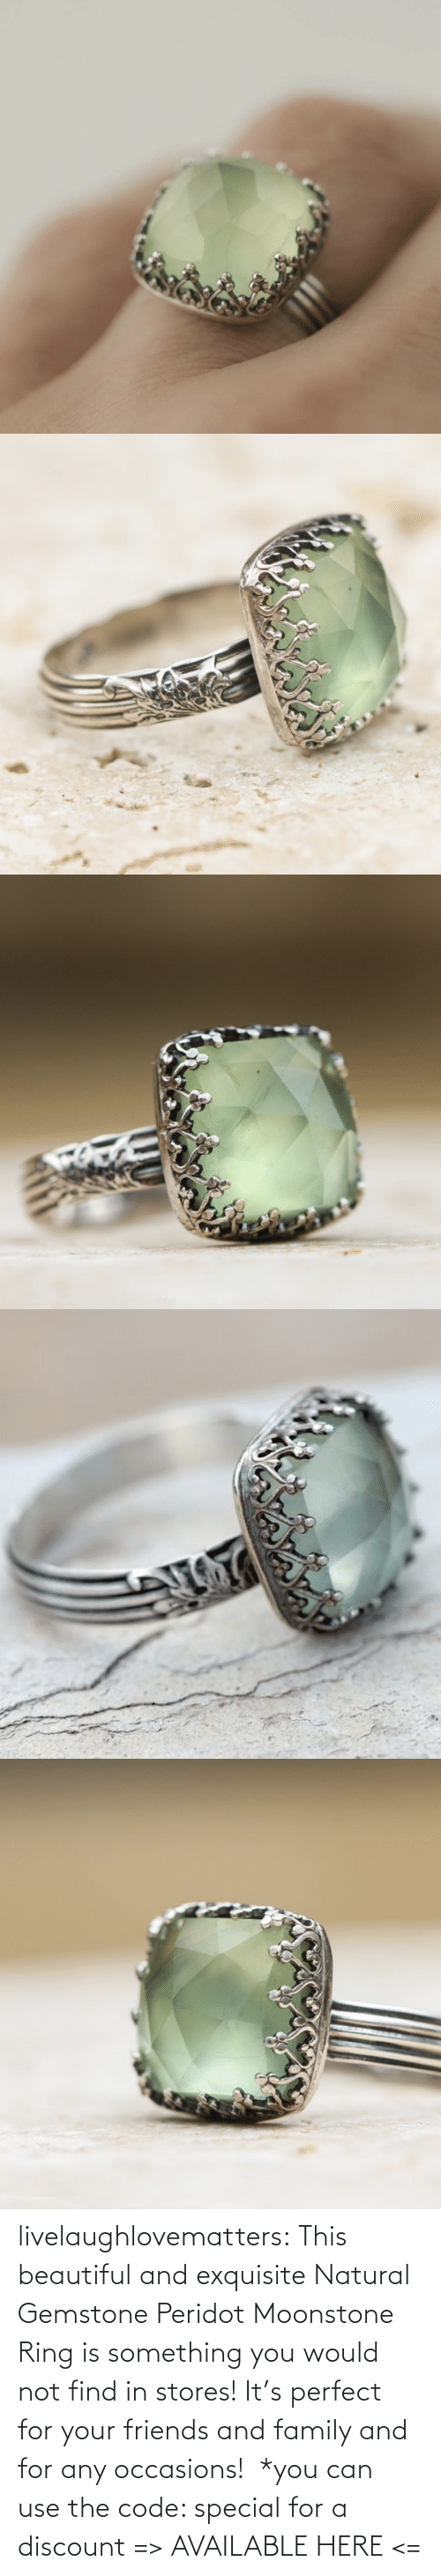 use: livelaughlovematters: This beautiful and exquisite Natural Gemstone Peridot Moonstone Ring is something you would not find in stores! It's perfect for your friends and family and for any occasions!  *you can use the code: special for a discount => AVAILABLE HERE <=